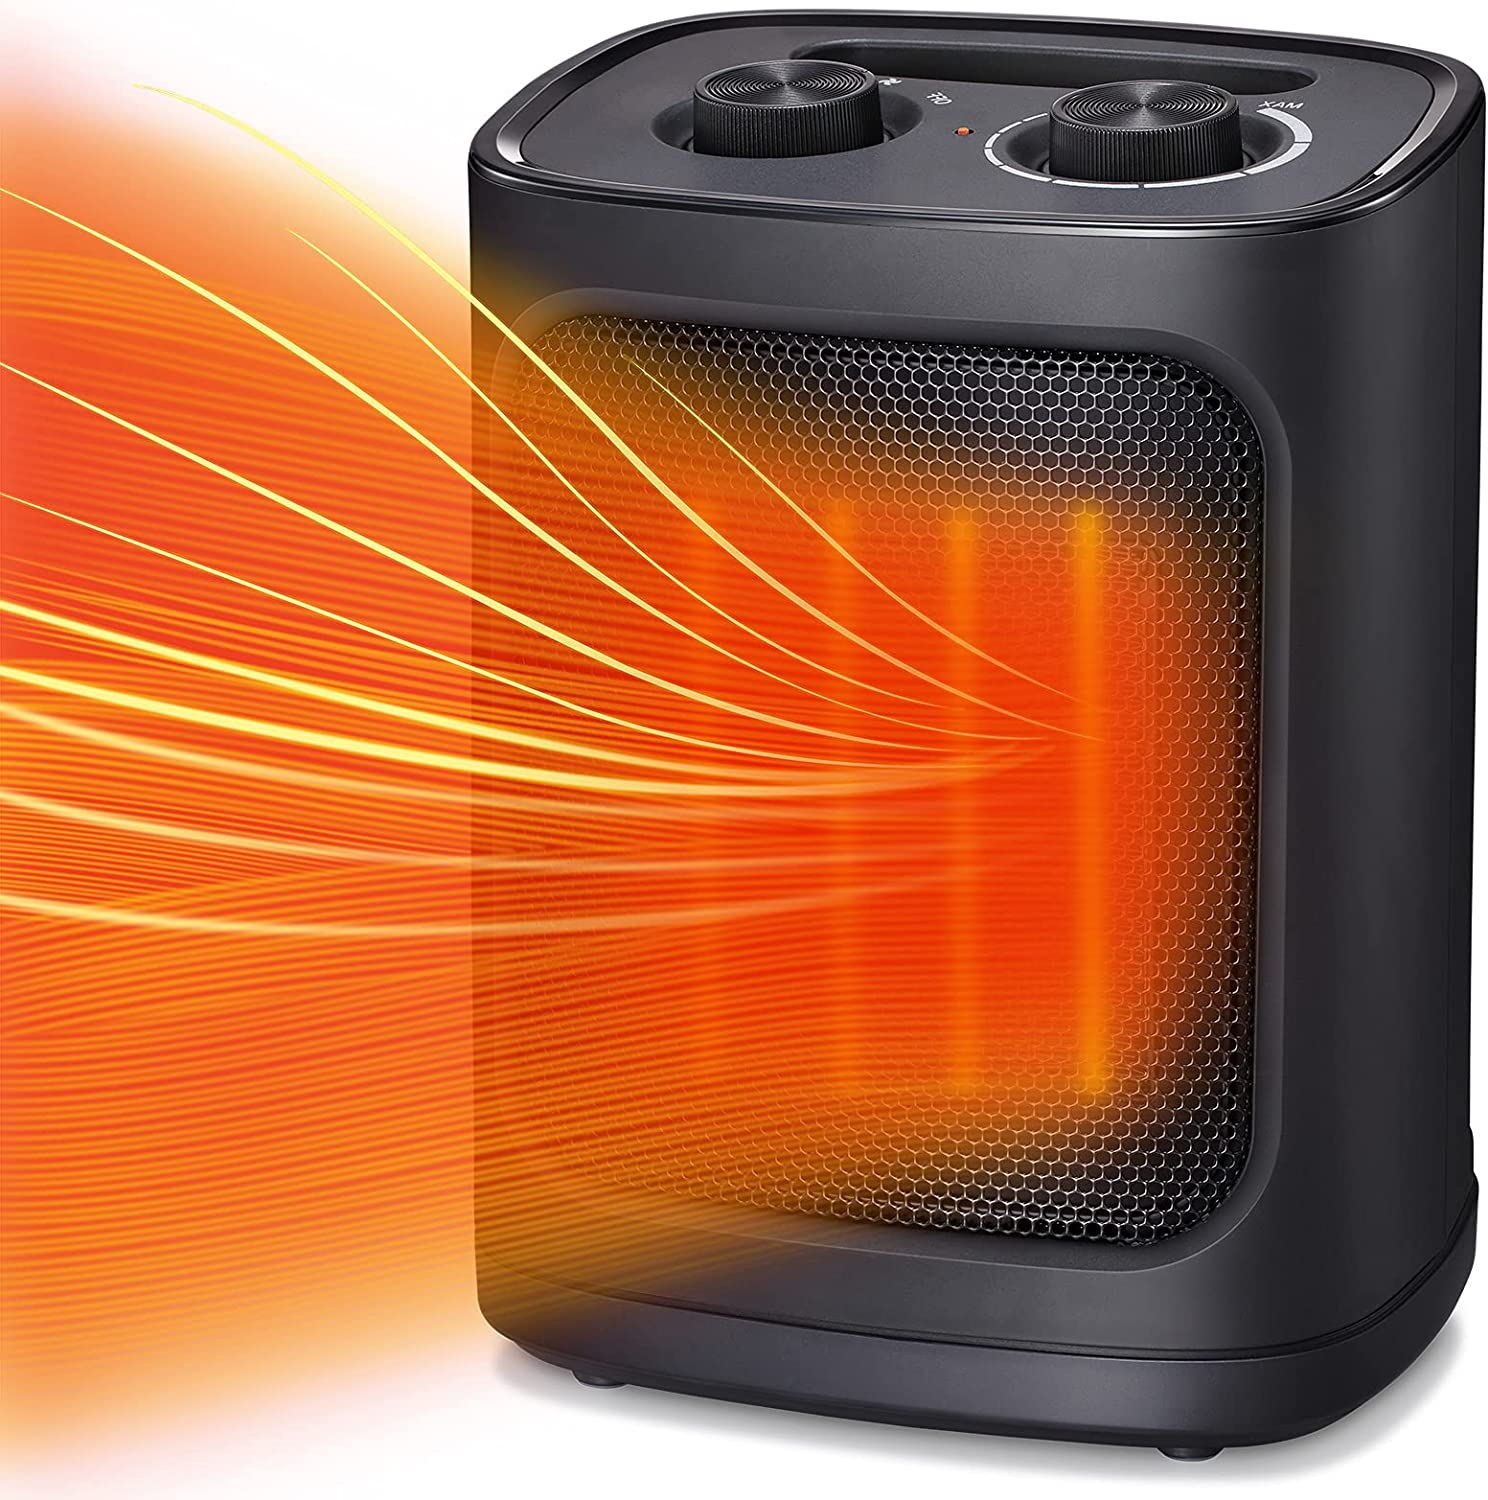 Kismile Portable Electric Space Heater, Small Ceramic Heater Fan with Thermostat, Tip-Over and Overheat Protection,Fast Heating for Home/Office,1500W